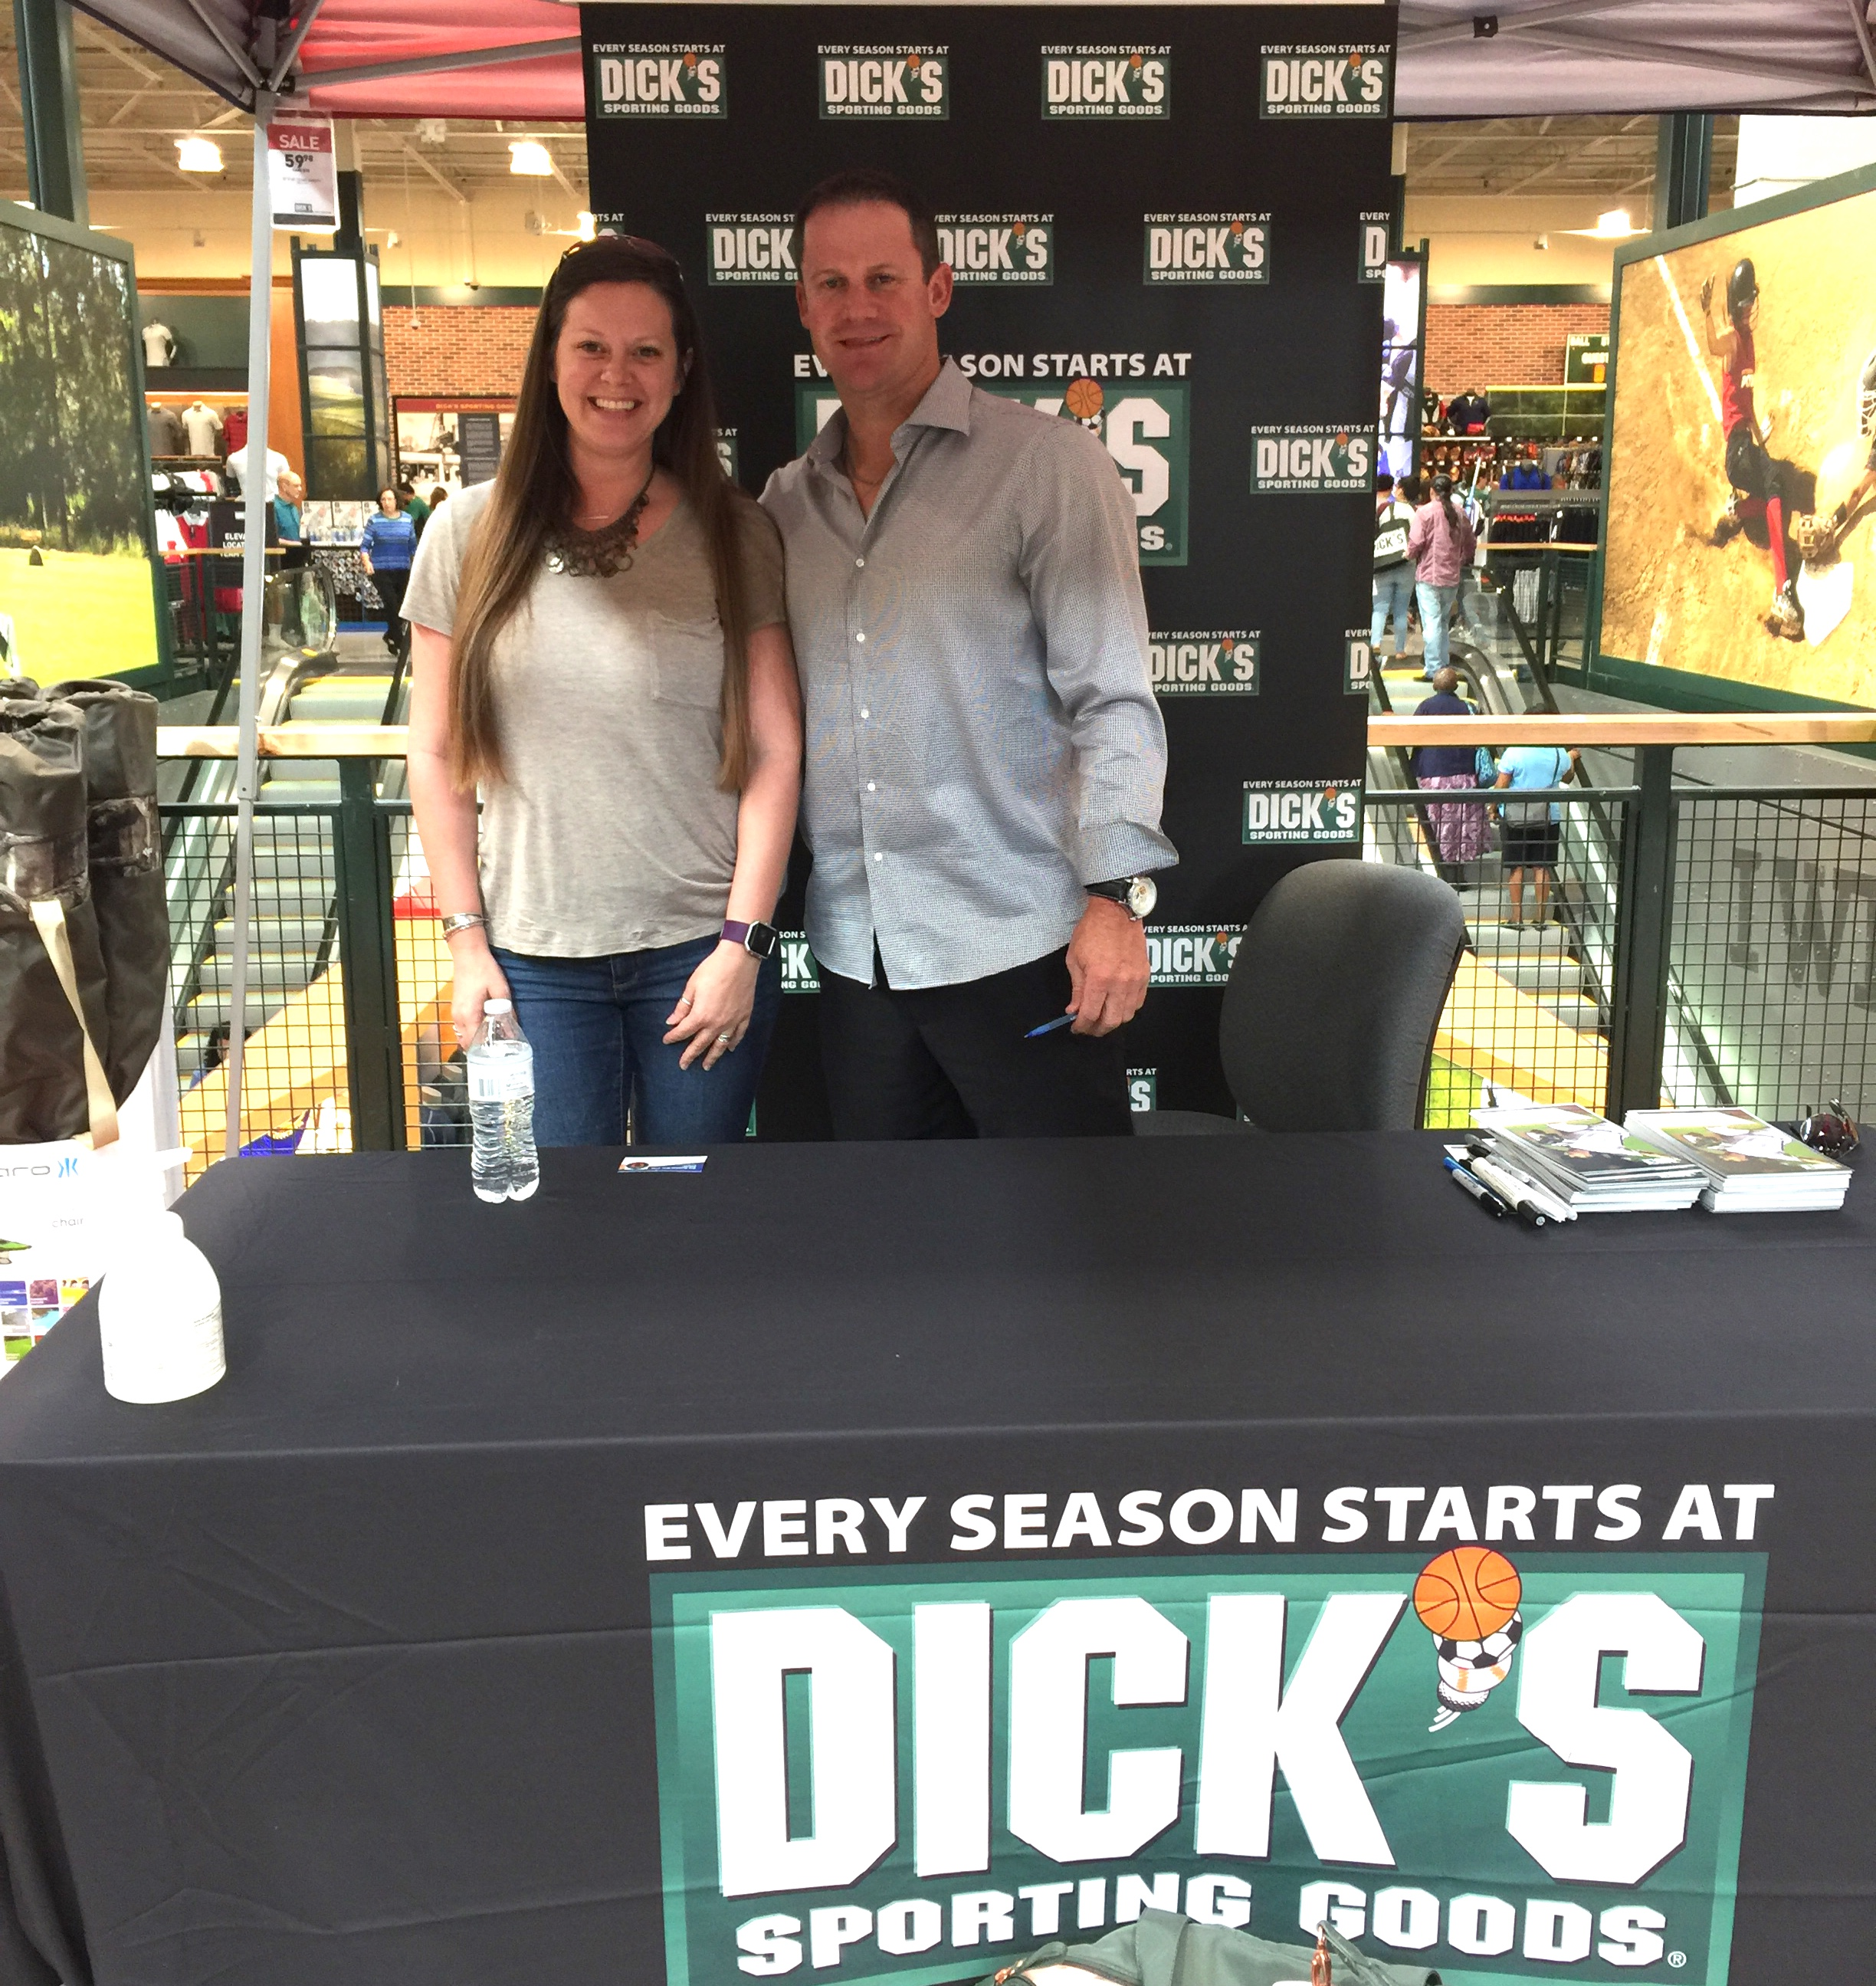 Dick's Sporting Goods recently opened six Houston-area stores to give Houston residents more choices when it comes to sporting goods.